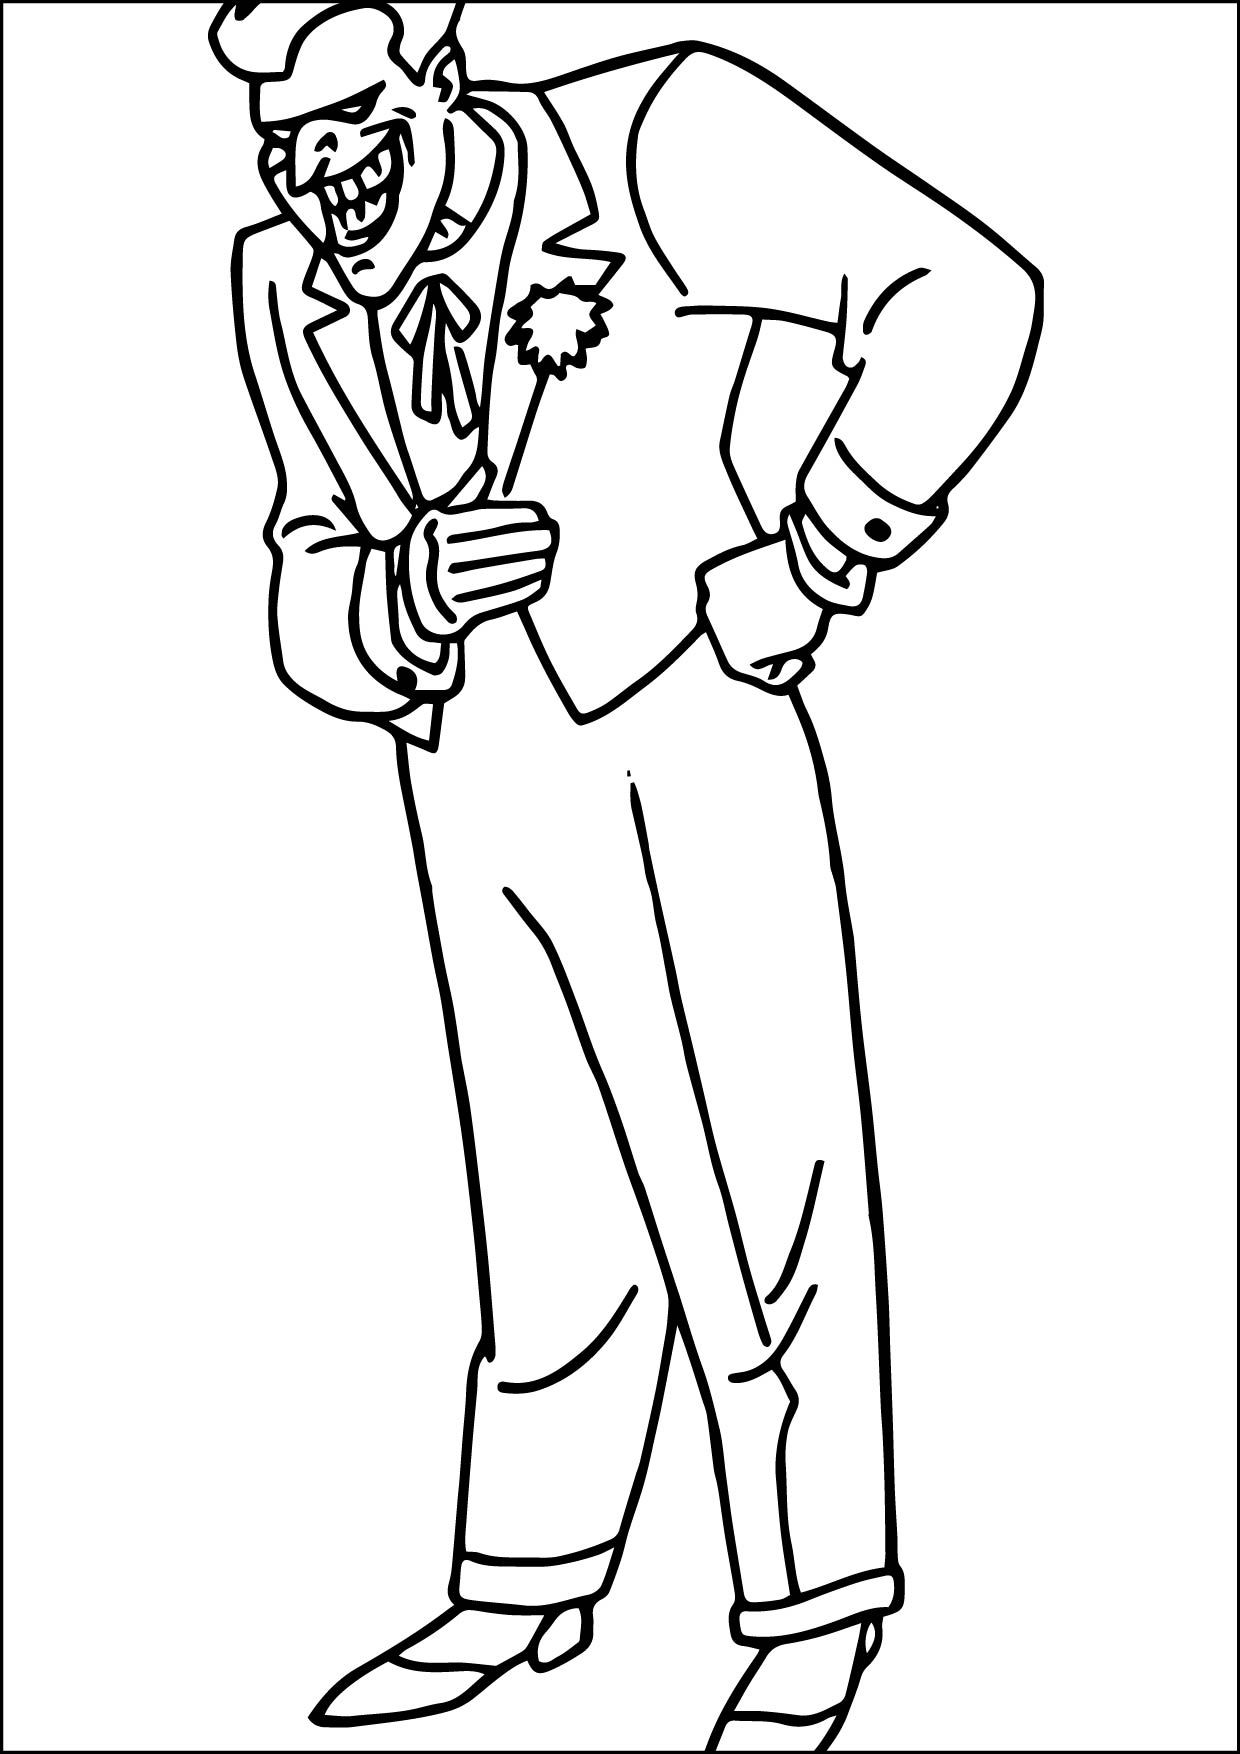 Cool Coloring Page 10 10 2015 184155 01 Check More At Http Www Mcoloring Com Index Php 2015 10 1 Batman Coloring Pages Superhero Coloring Lego Coloring Pages